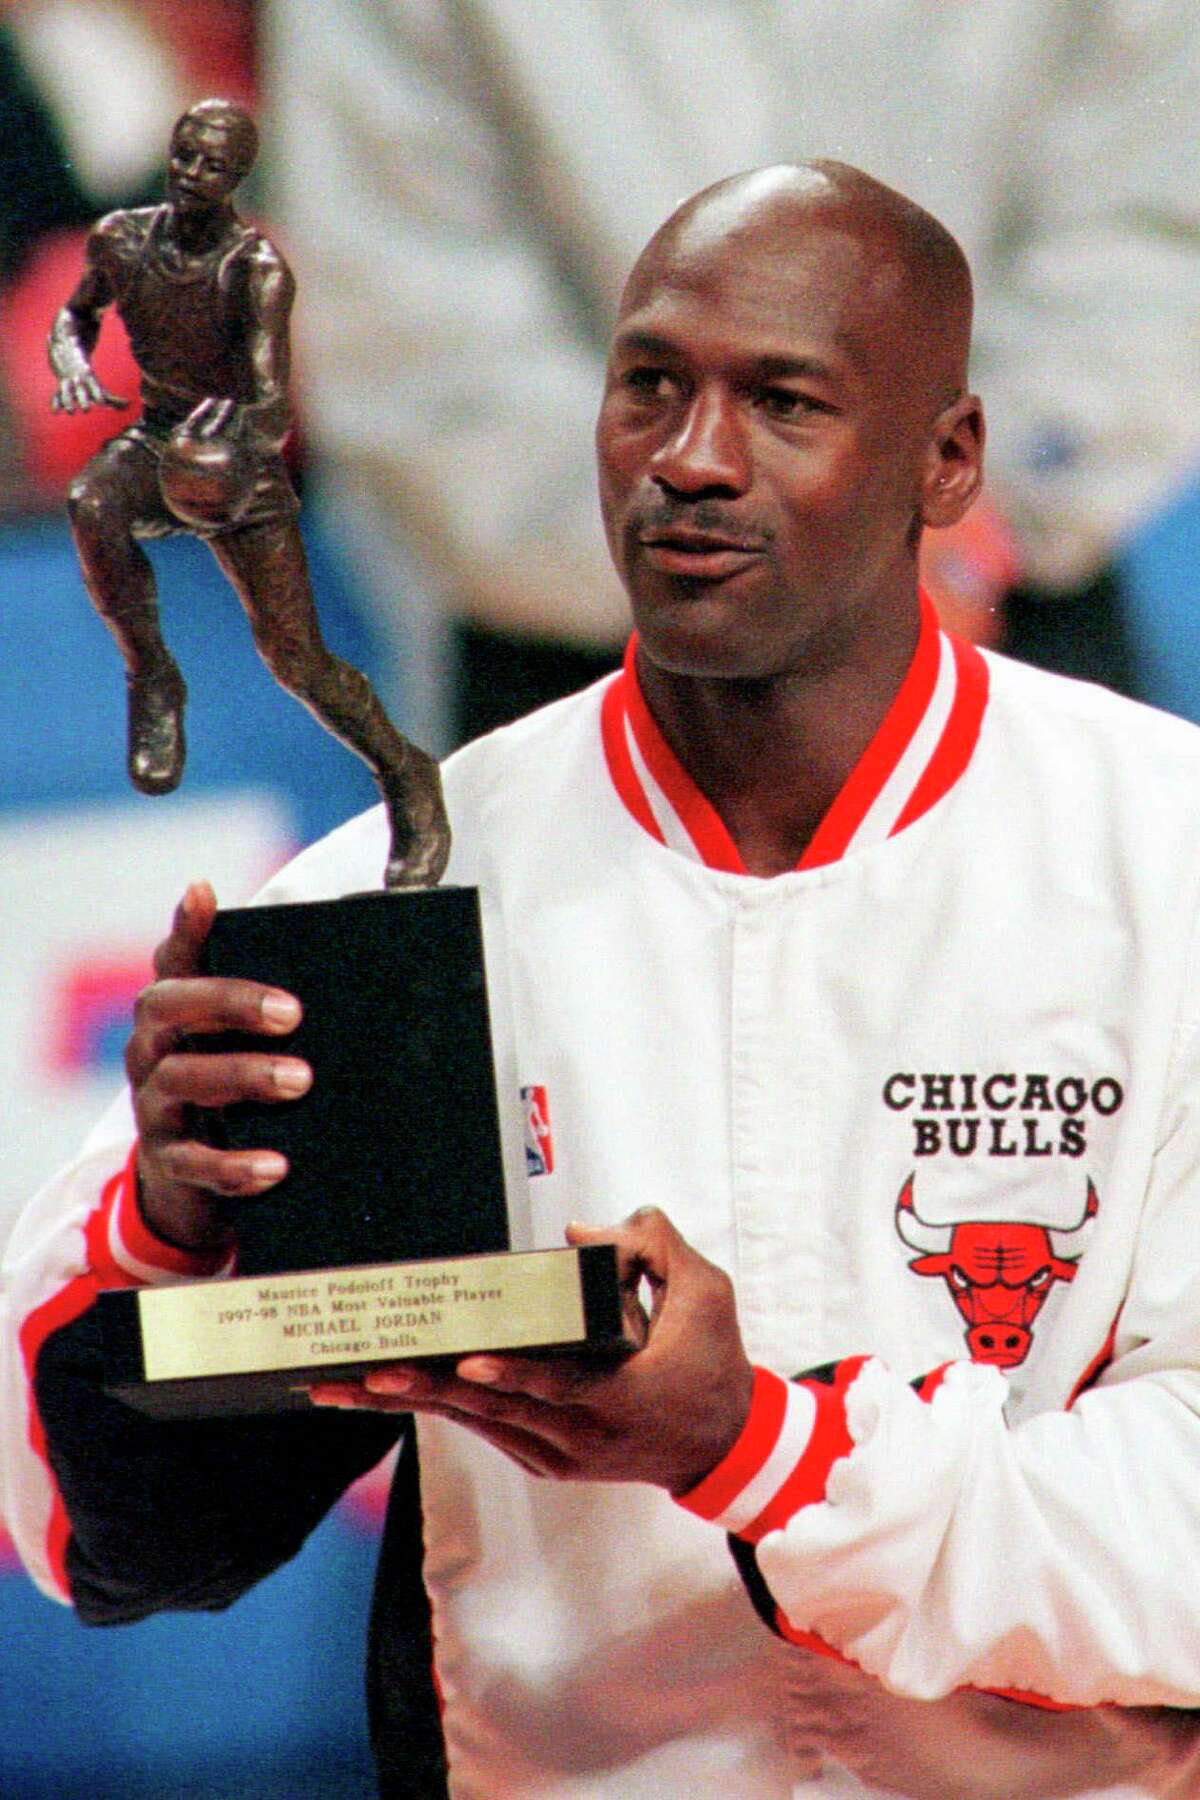 FILE - In this May 19, 1998, file photo, Chicago Bulls' Michael Jordan looks at the MVP award presented to him before the Bulls-Indiana Pacers playoff game in Chicago. Jordan described his final NBA championship season with the Chicago Bulls as a